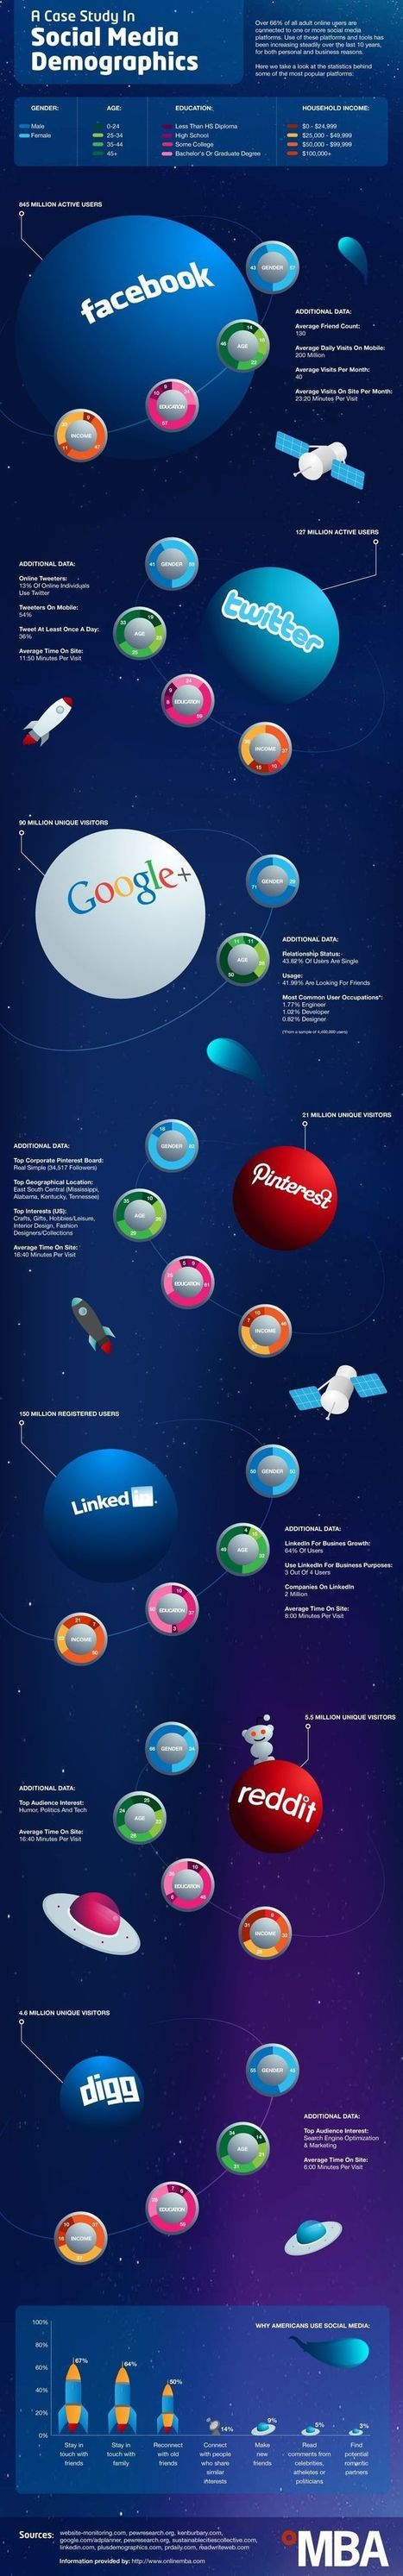 A Case Study in Social Media Demographics: Infographic | Social Media and the Future of Education | Scoop.it